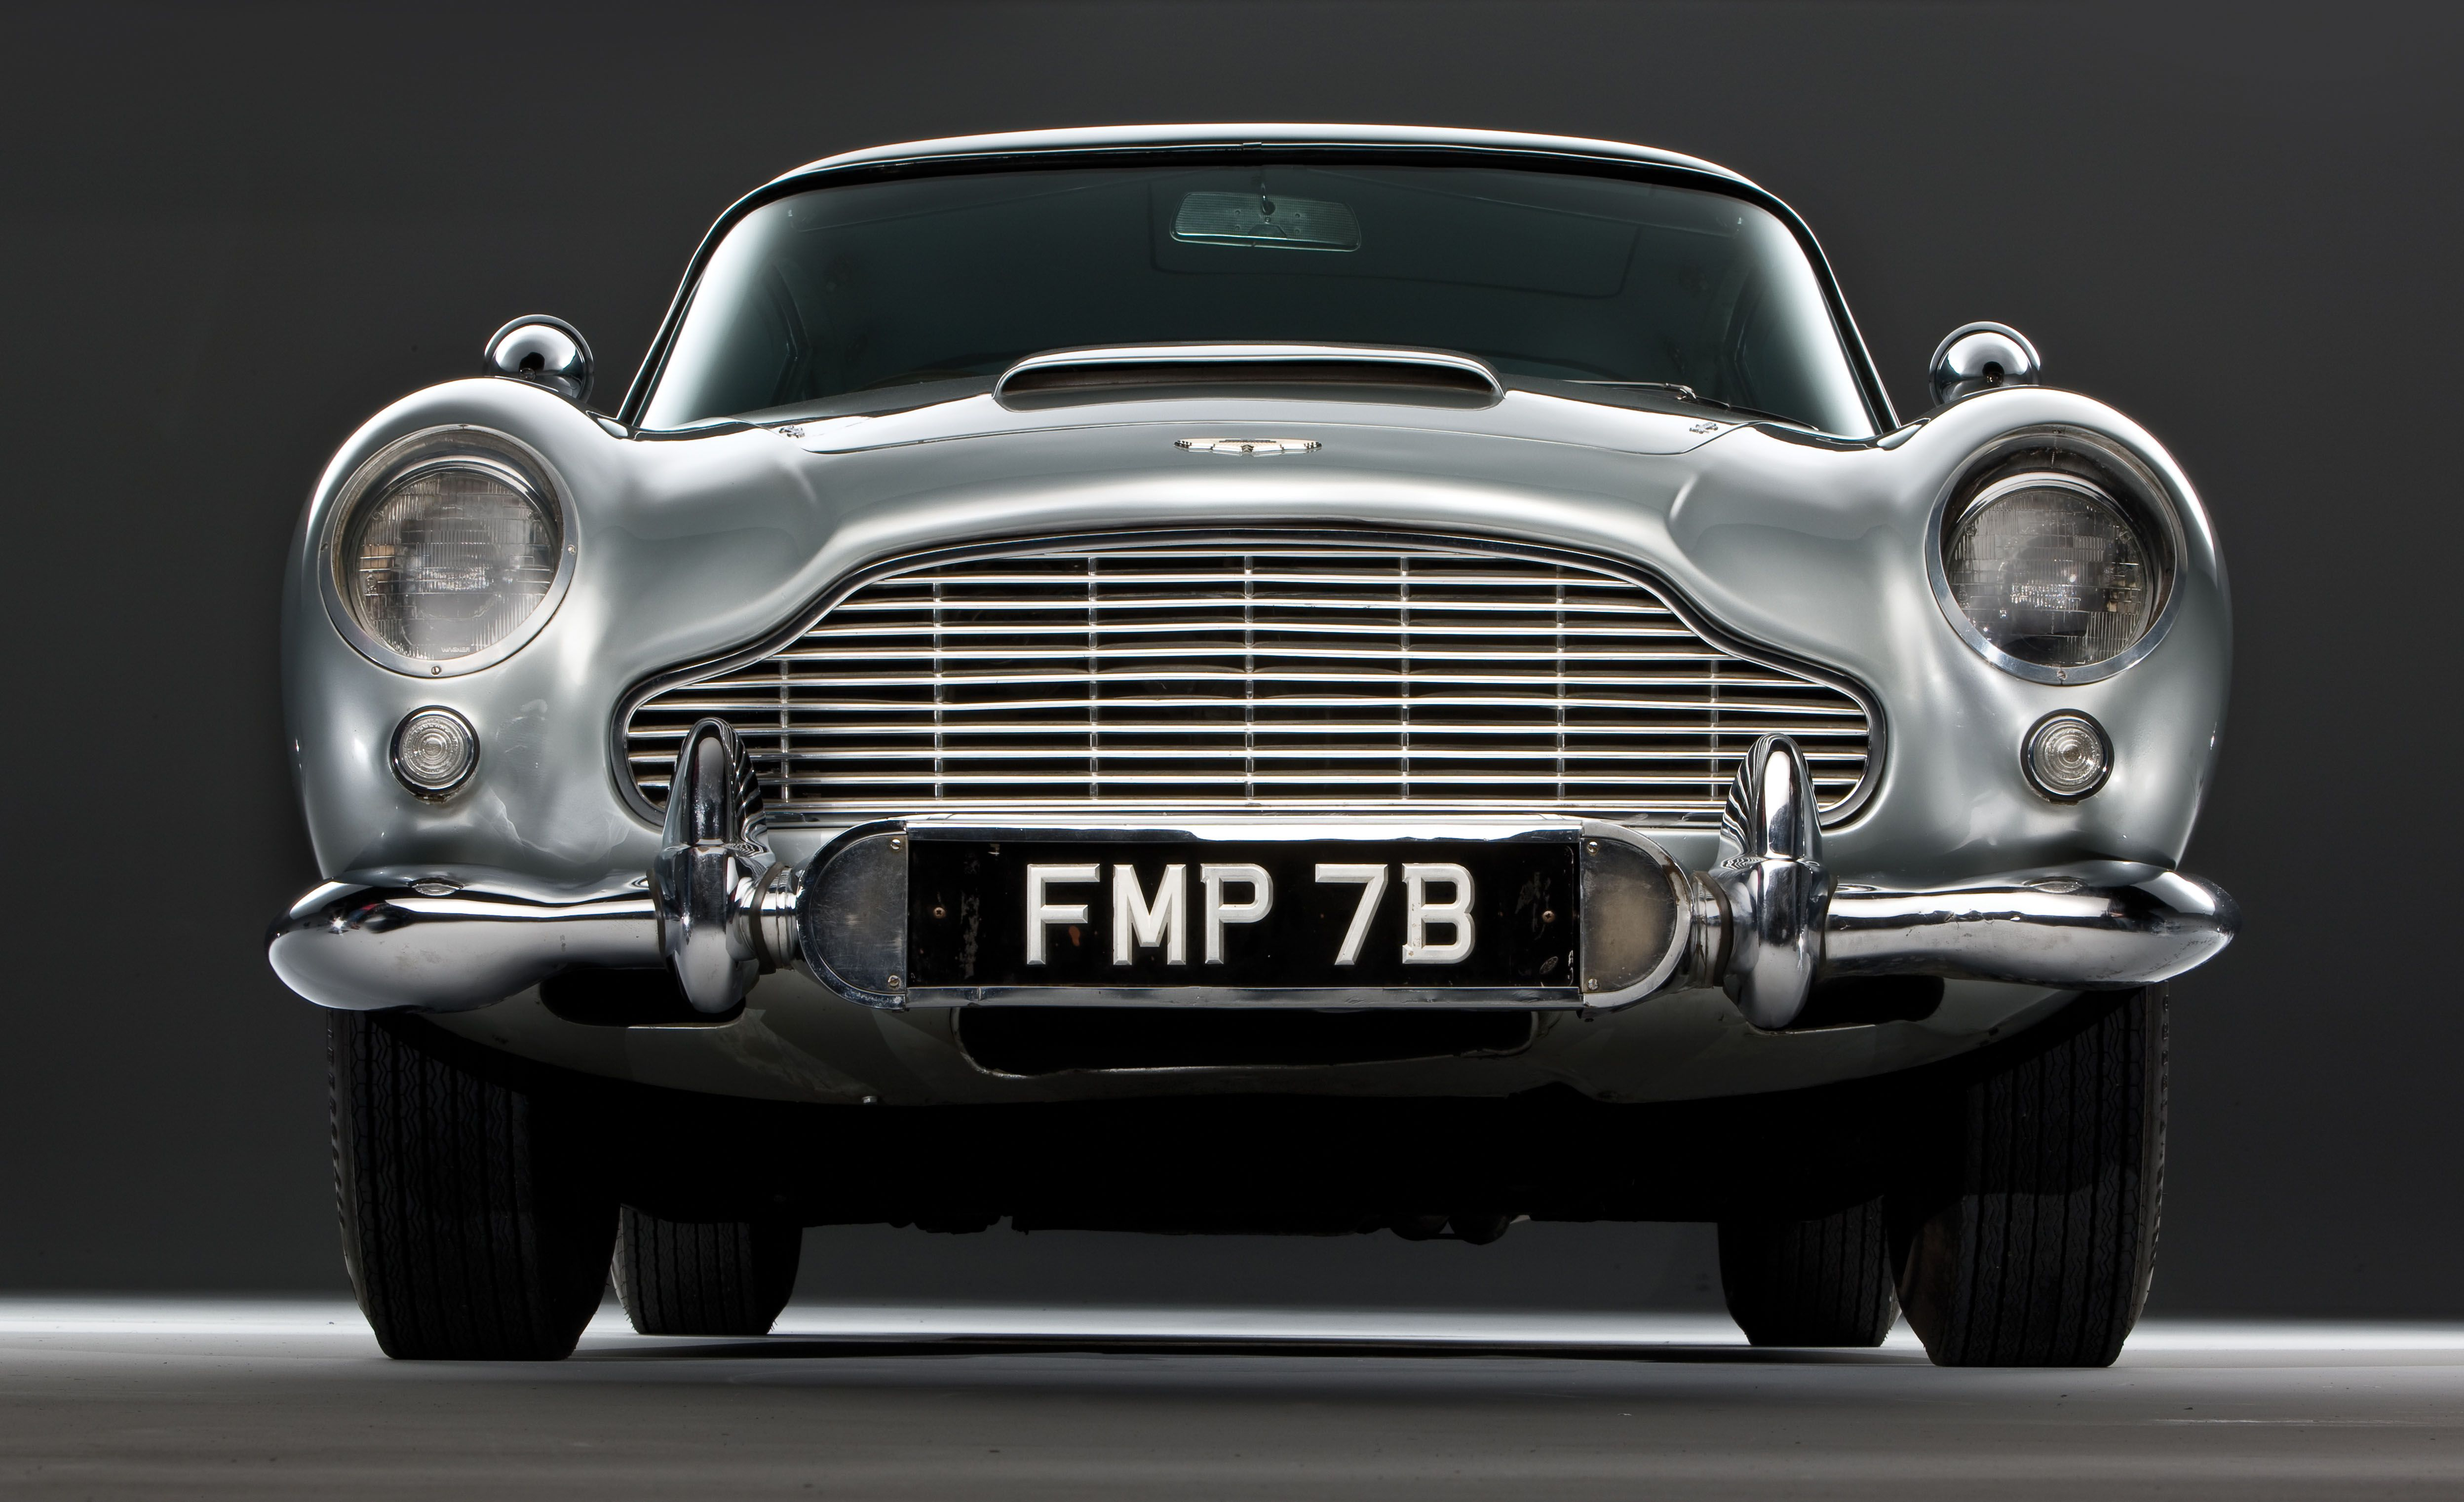 Unfortunately James Bond Wannabes Worldwide Have Driven The Cost Of - 1964 aston martin db5 price